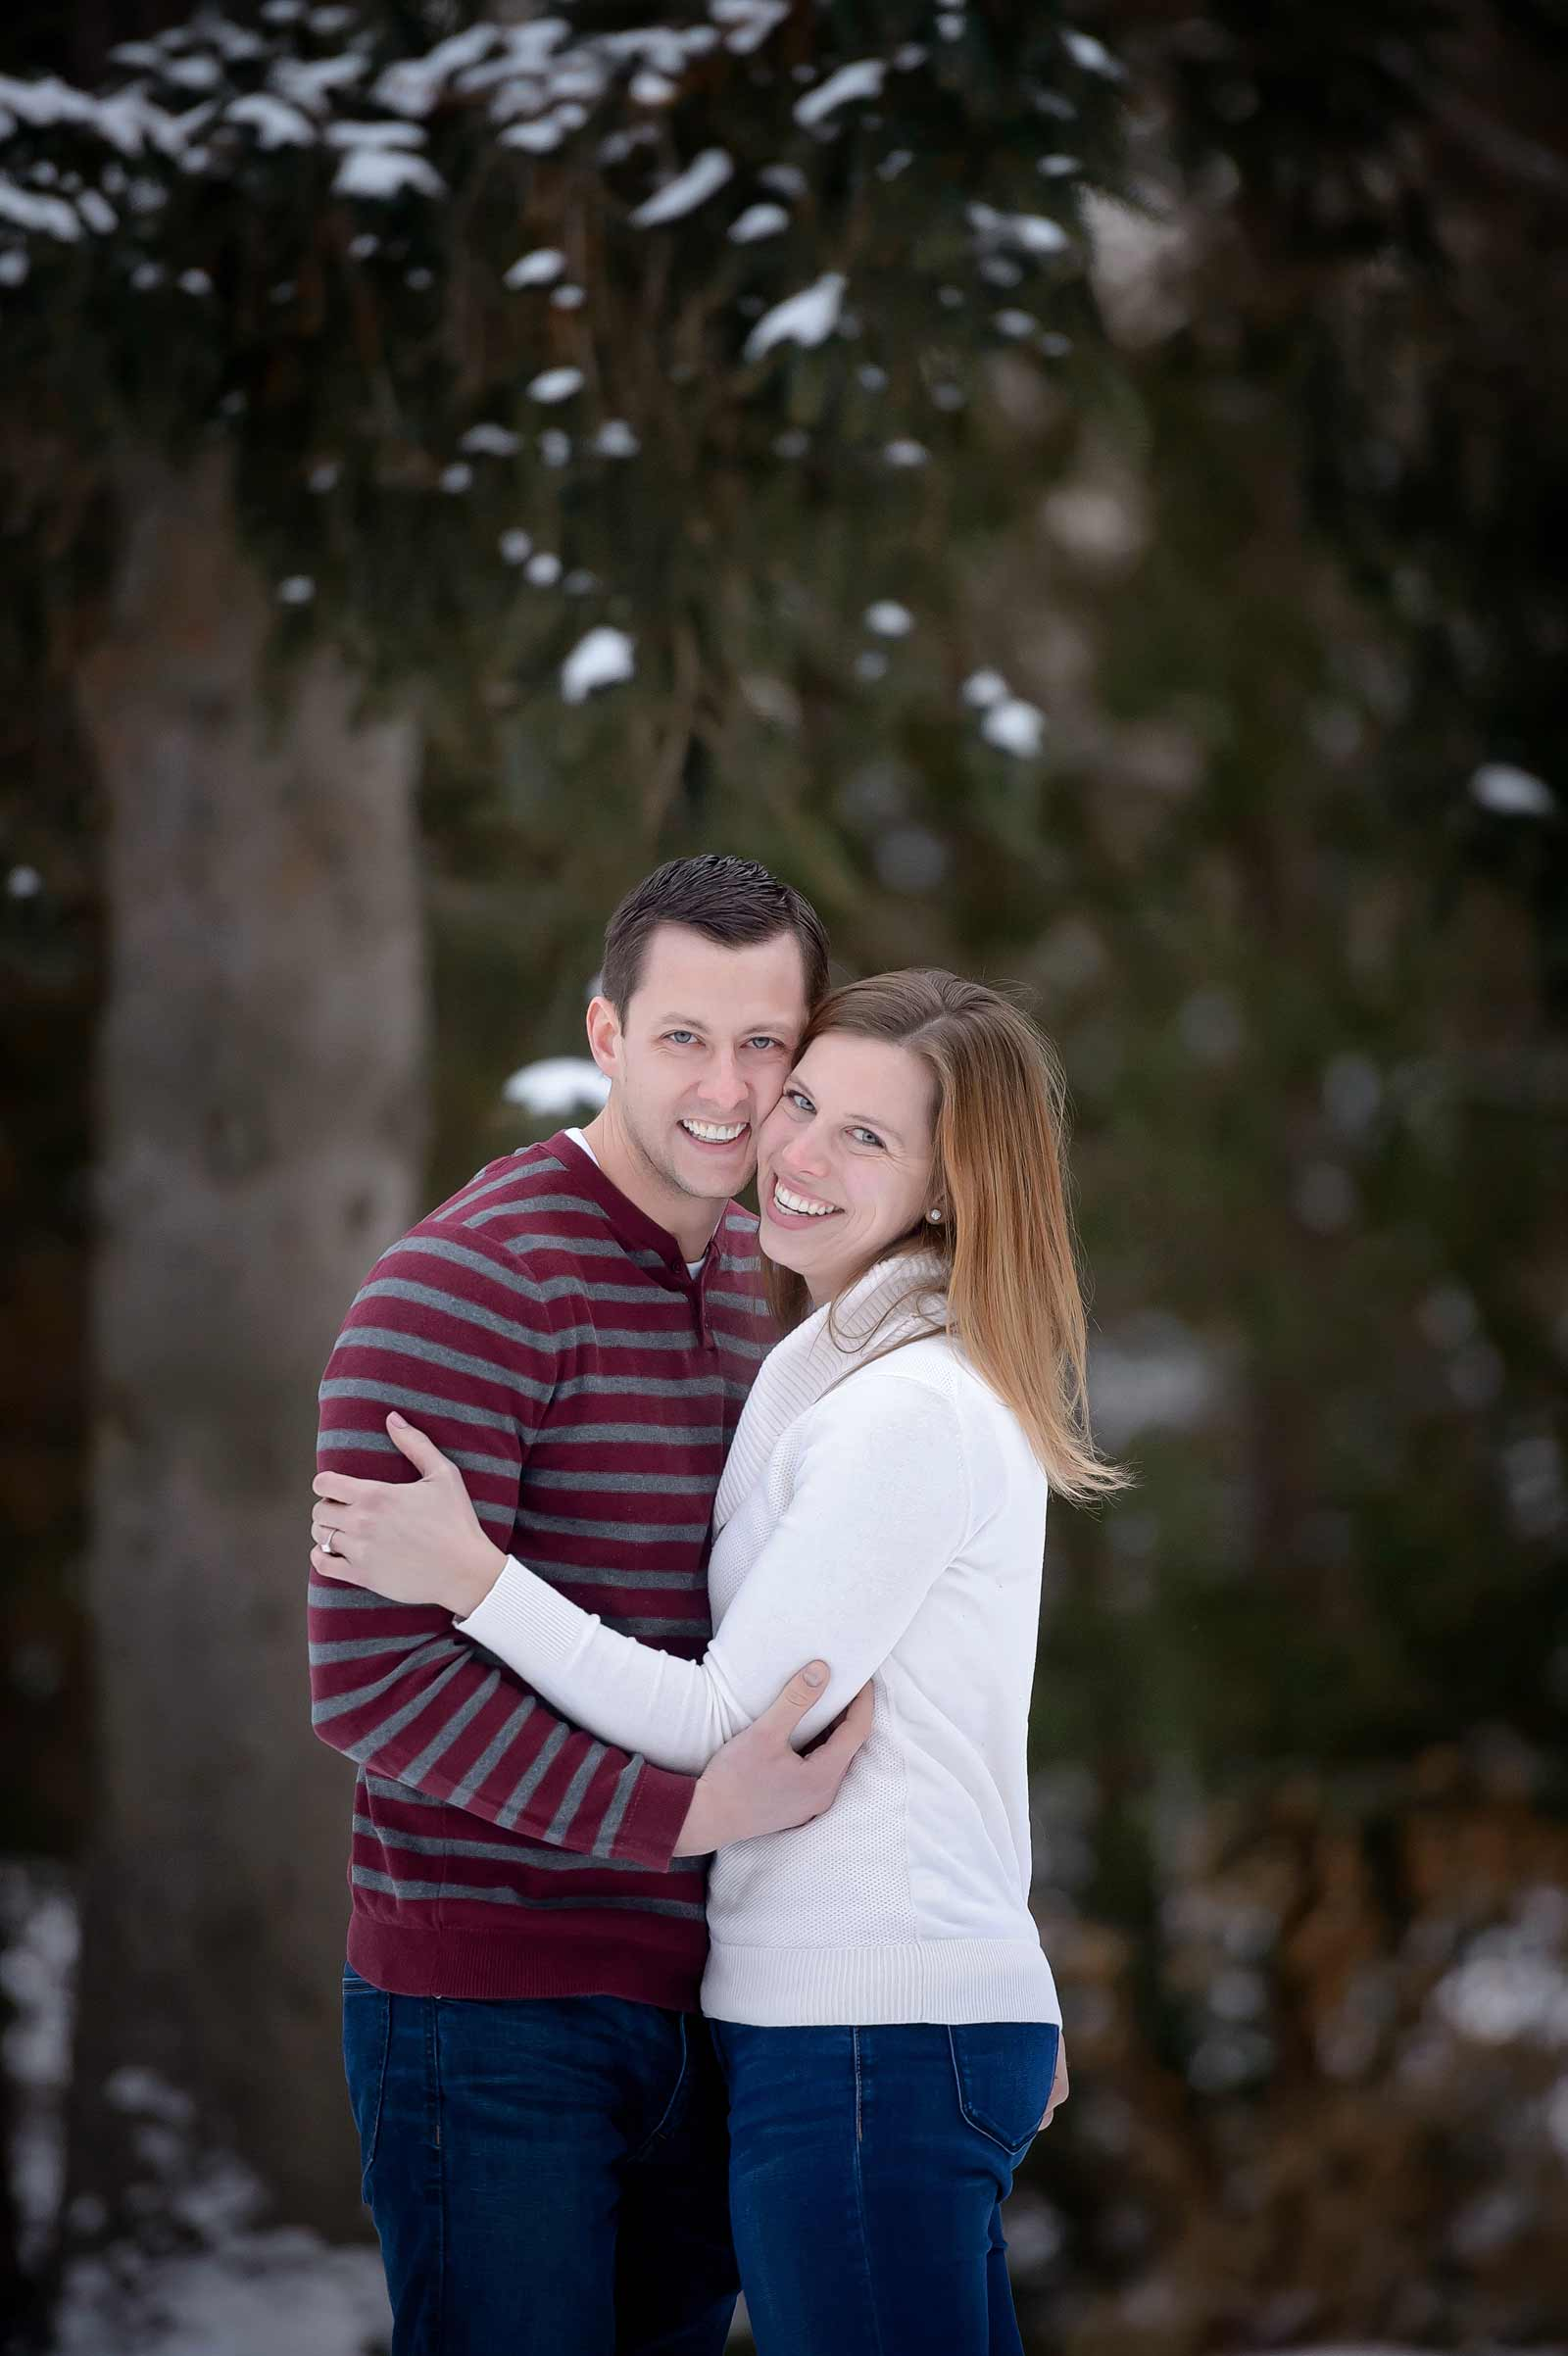 Bridget and Mike's winter engagement session in Manotick, Ottawa, Ontario, cuddling together outside in the snow